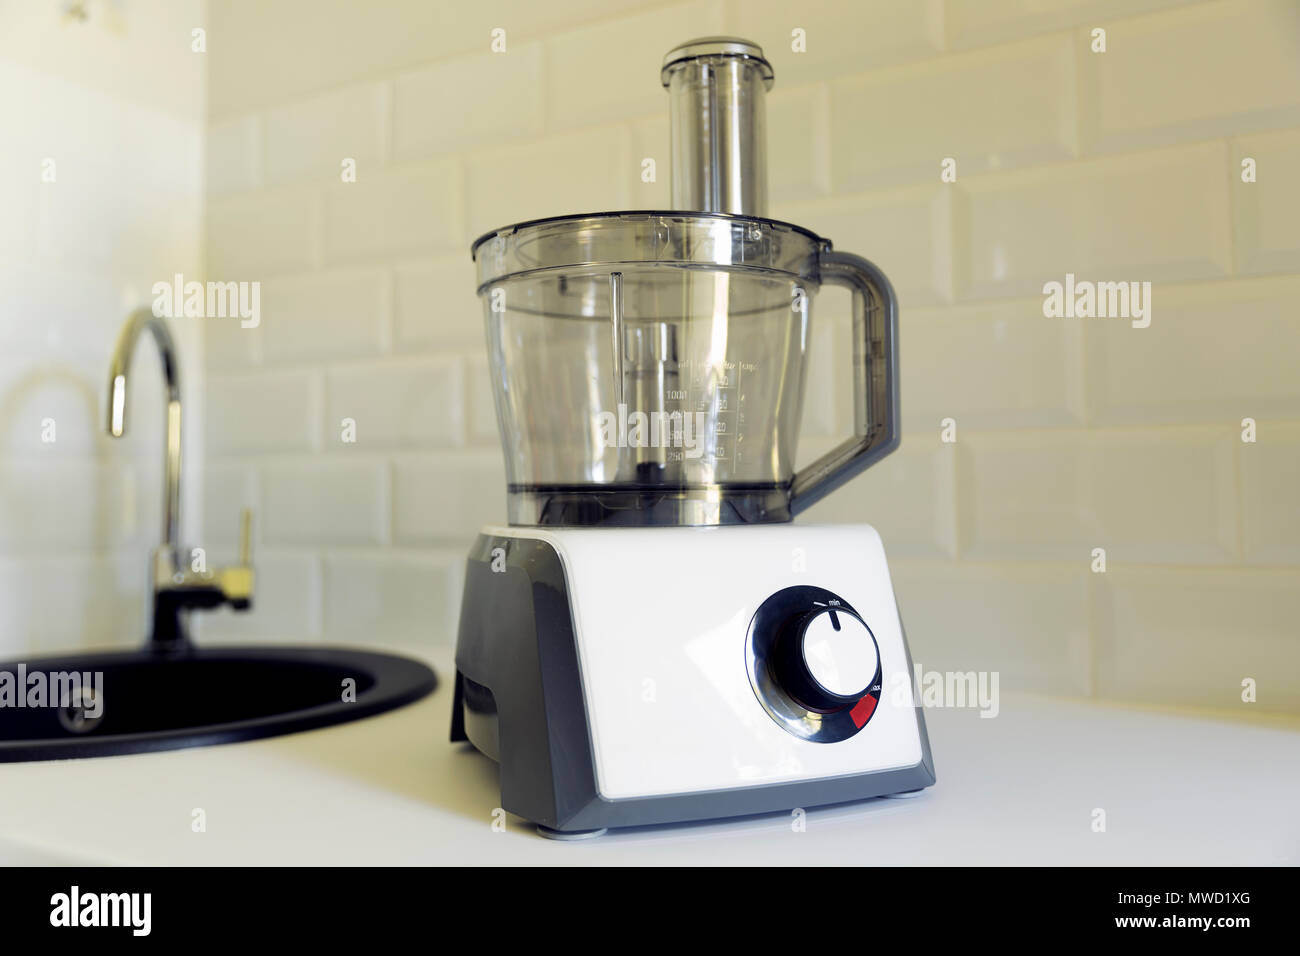 Delicieux Electric Food Processor On Kitchen Countertop, Kitchen Sink On The  Background. Easy And Fast Cooking, Kitchen Applience Concept